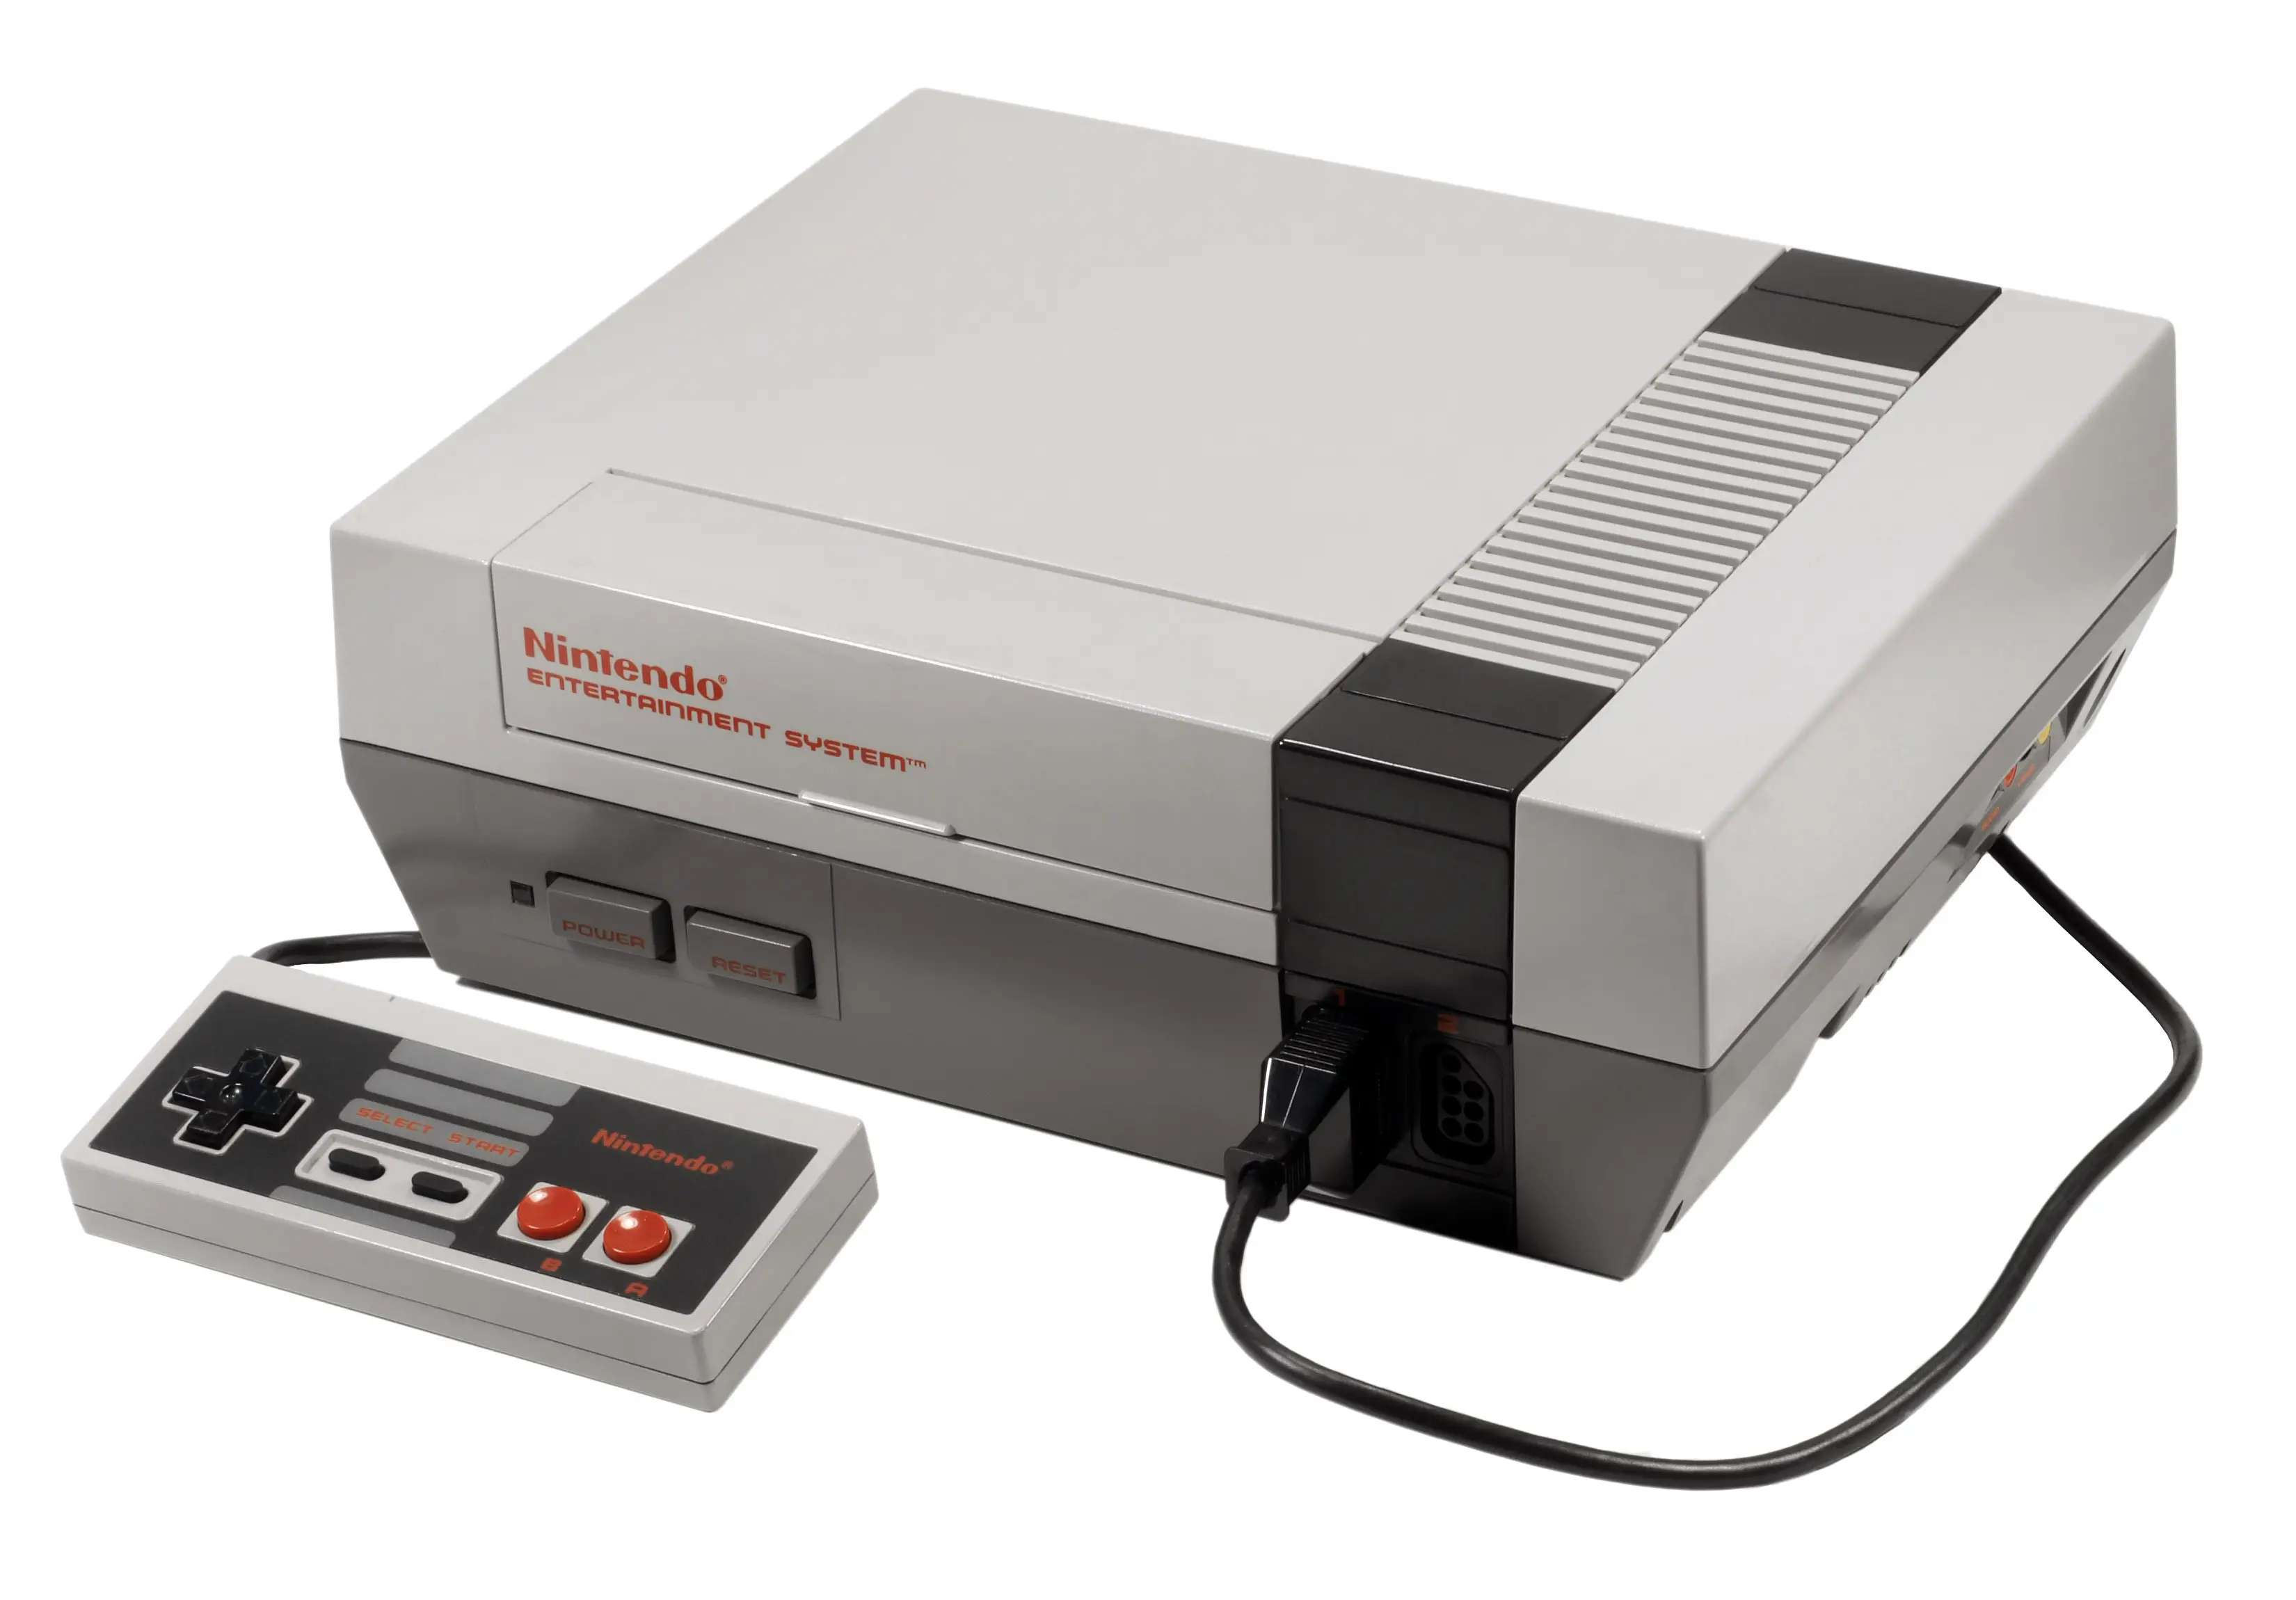 The Nintendo NES came bundled with Super Mario Brothers so ... enough said?